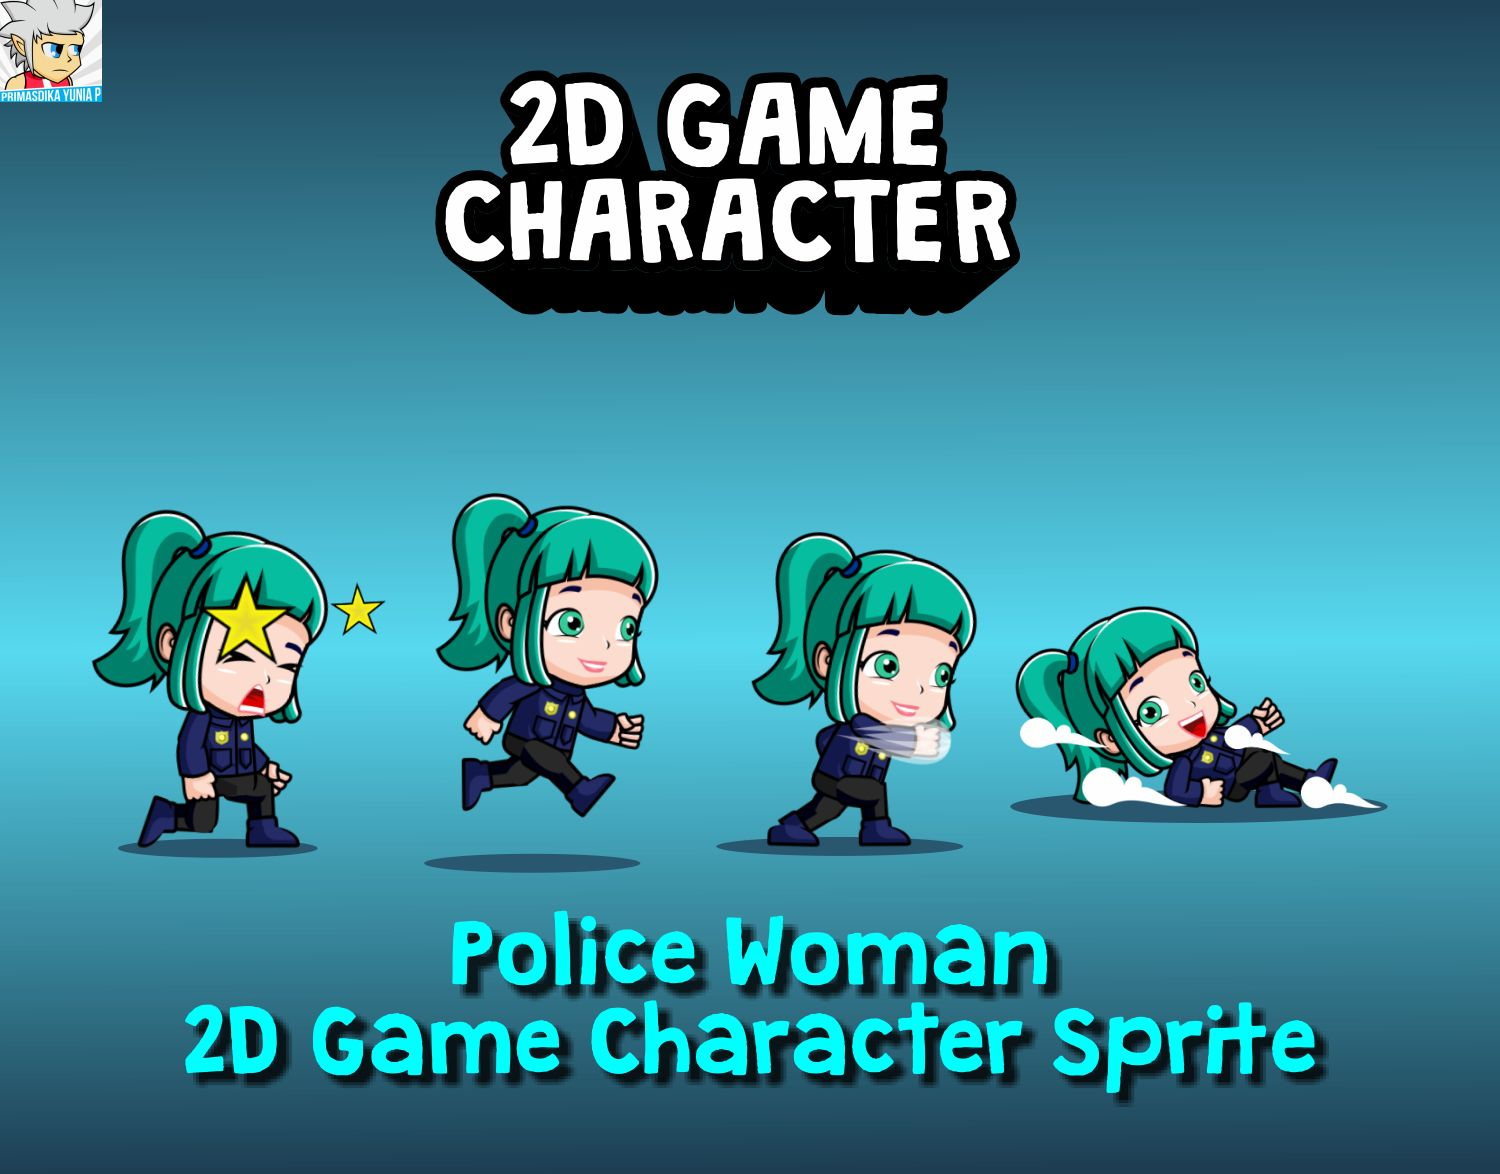 Police Woman 2D Game Character Sprite Screenshot 1